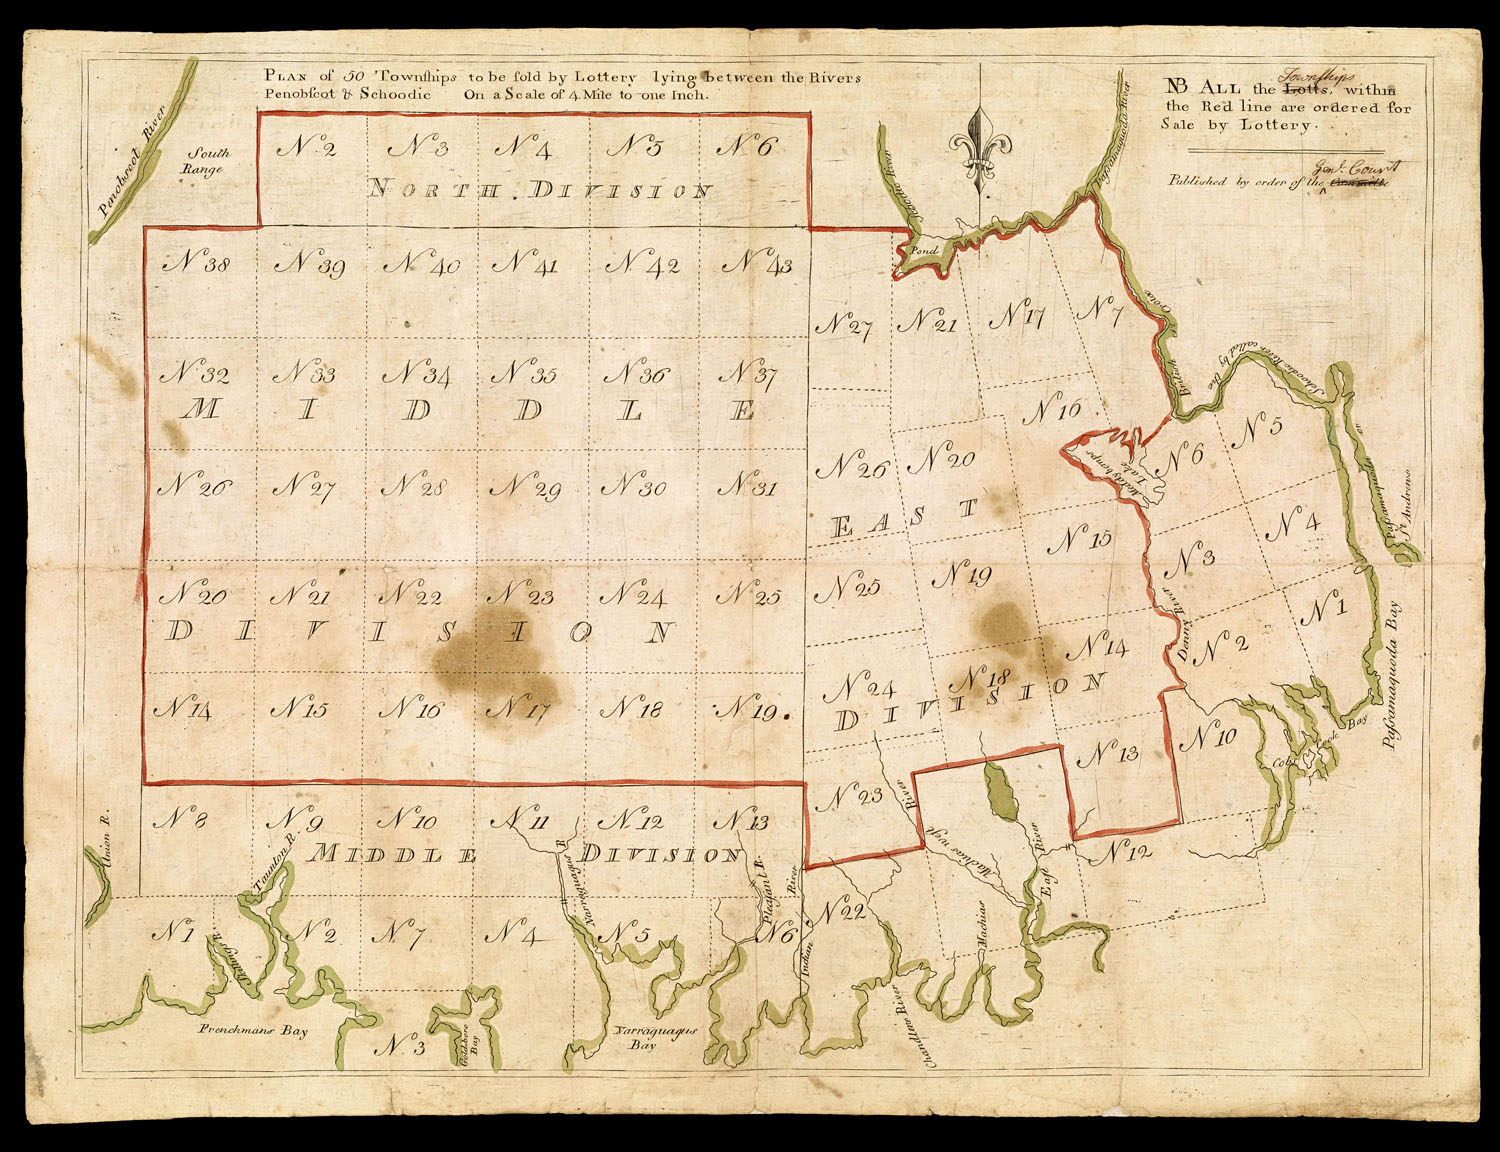 "Fig. 6.  Plan of 50 townships to be sold by lottery lying between the rivers Penobscot & Schoodic | NB All the Lotts  [replaced in ms with Townships],  with the Red line are ordered for Sale by Lottery. | Published by order of the Committe  [replaced in ms with Genl. Court] ([Boston]: [1786]); 34cm × 45cm; 1:253,440. This printed map, with manuscript emendations to the tile—the correction of ""Townships"" for ""Lotts"" was made on all impressions that I've seen; that of ""Genl. Court"" for ""Committe"" was not made on all—was probably intended to advertise the 1786 lottery. Courtesy of the Osher Map Library and Smith Center for Cartographic Education, University of Southern Maine (Gift of Harry Pringle in honor of Peggy Osher). http://www.oshermaps.org/map/45937.0001"